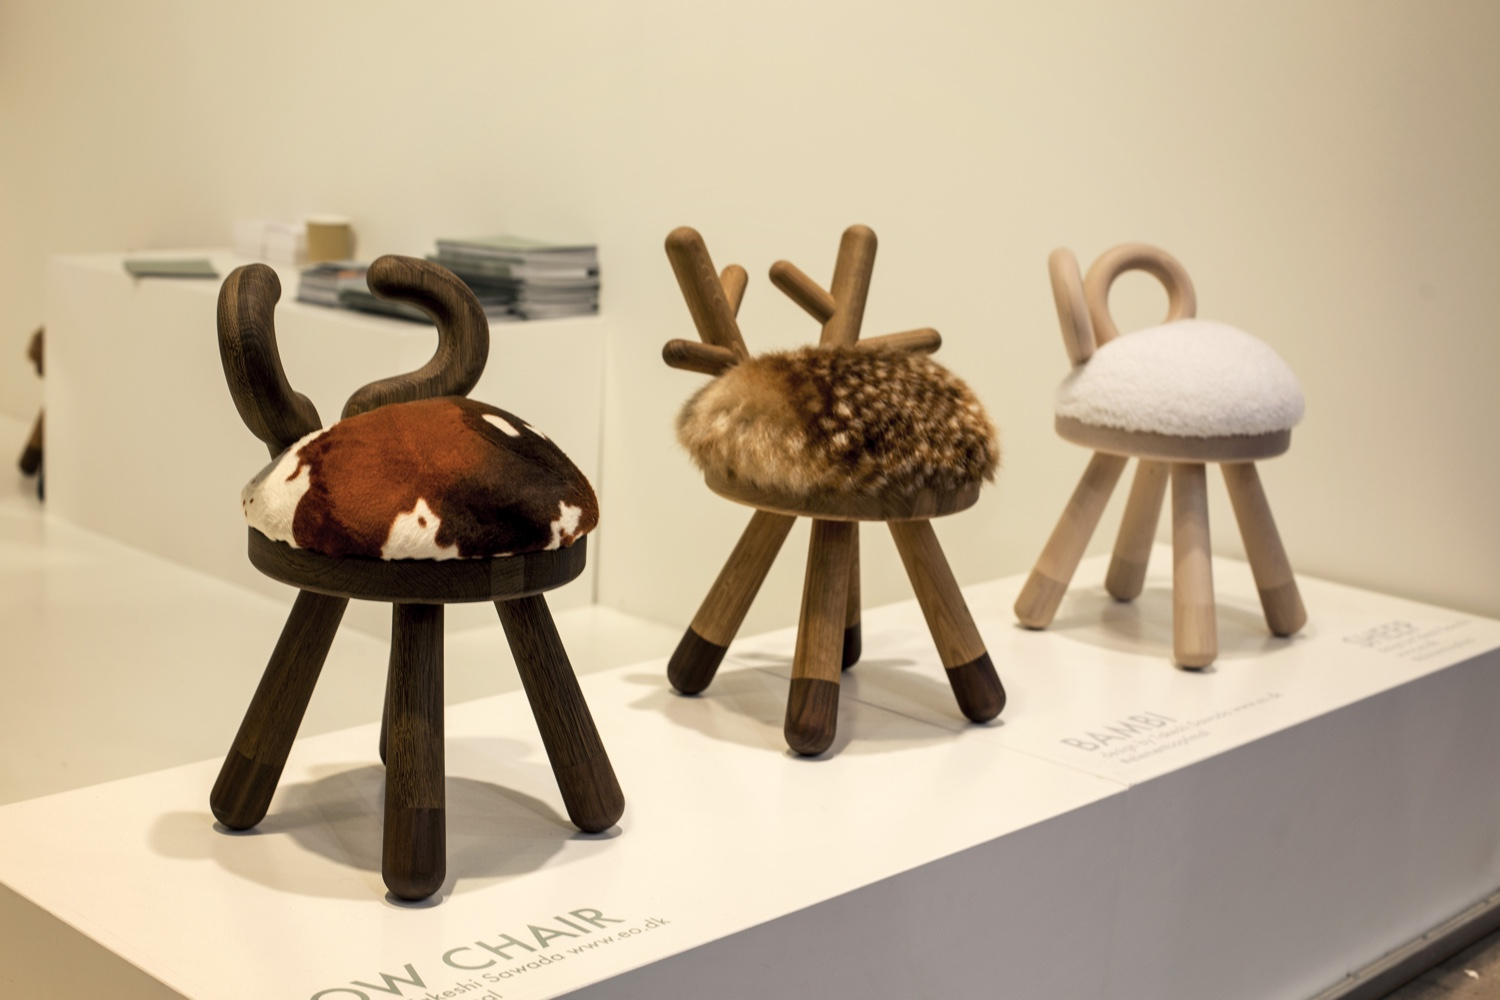 Elements Optimal Cow, Bambi, Sheep chairs